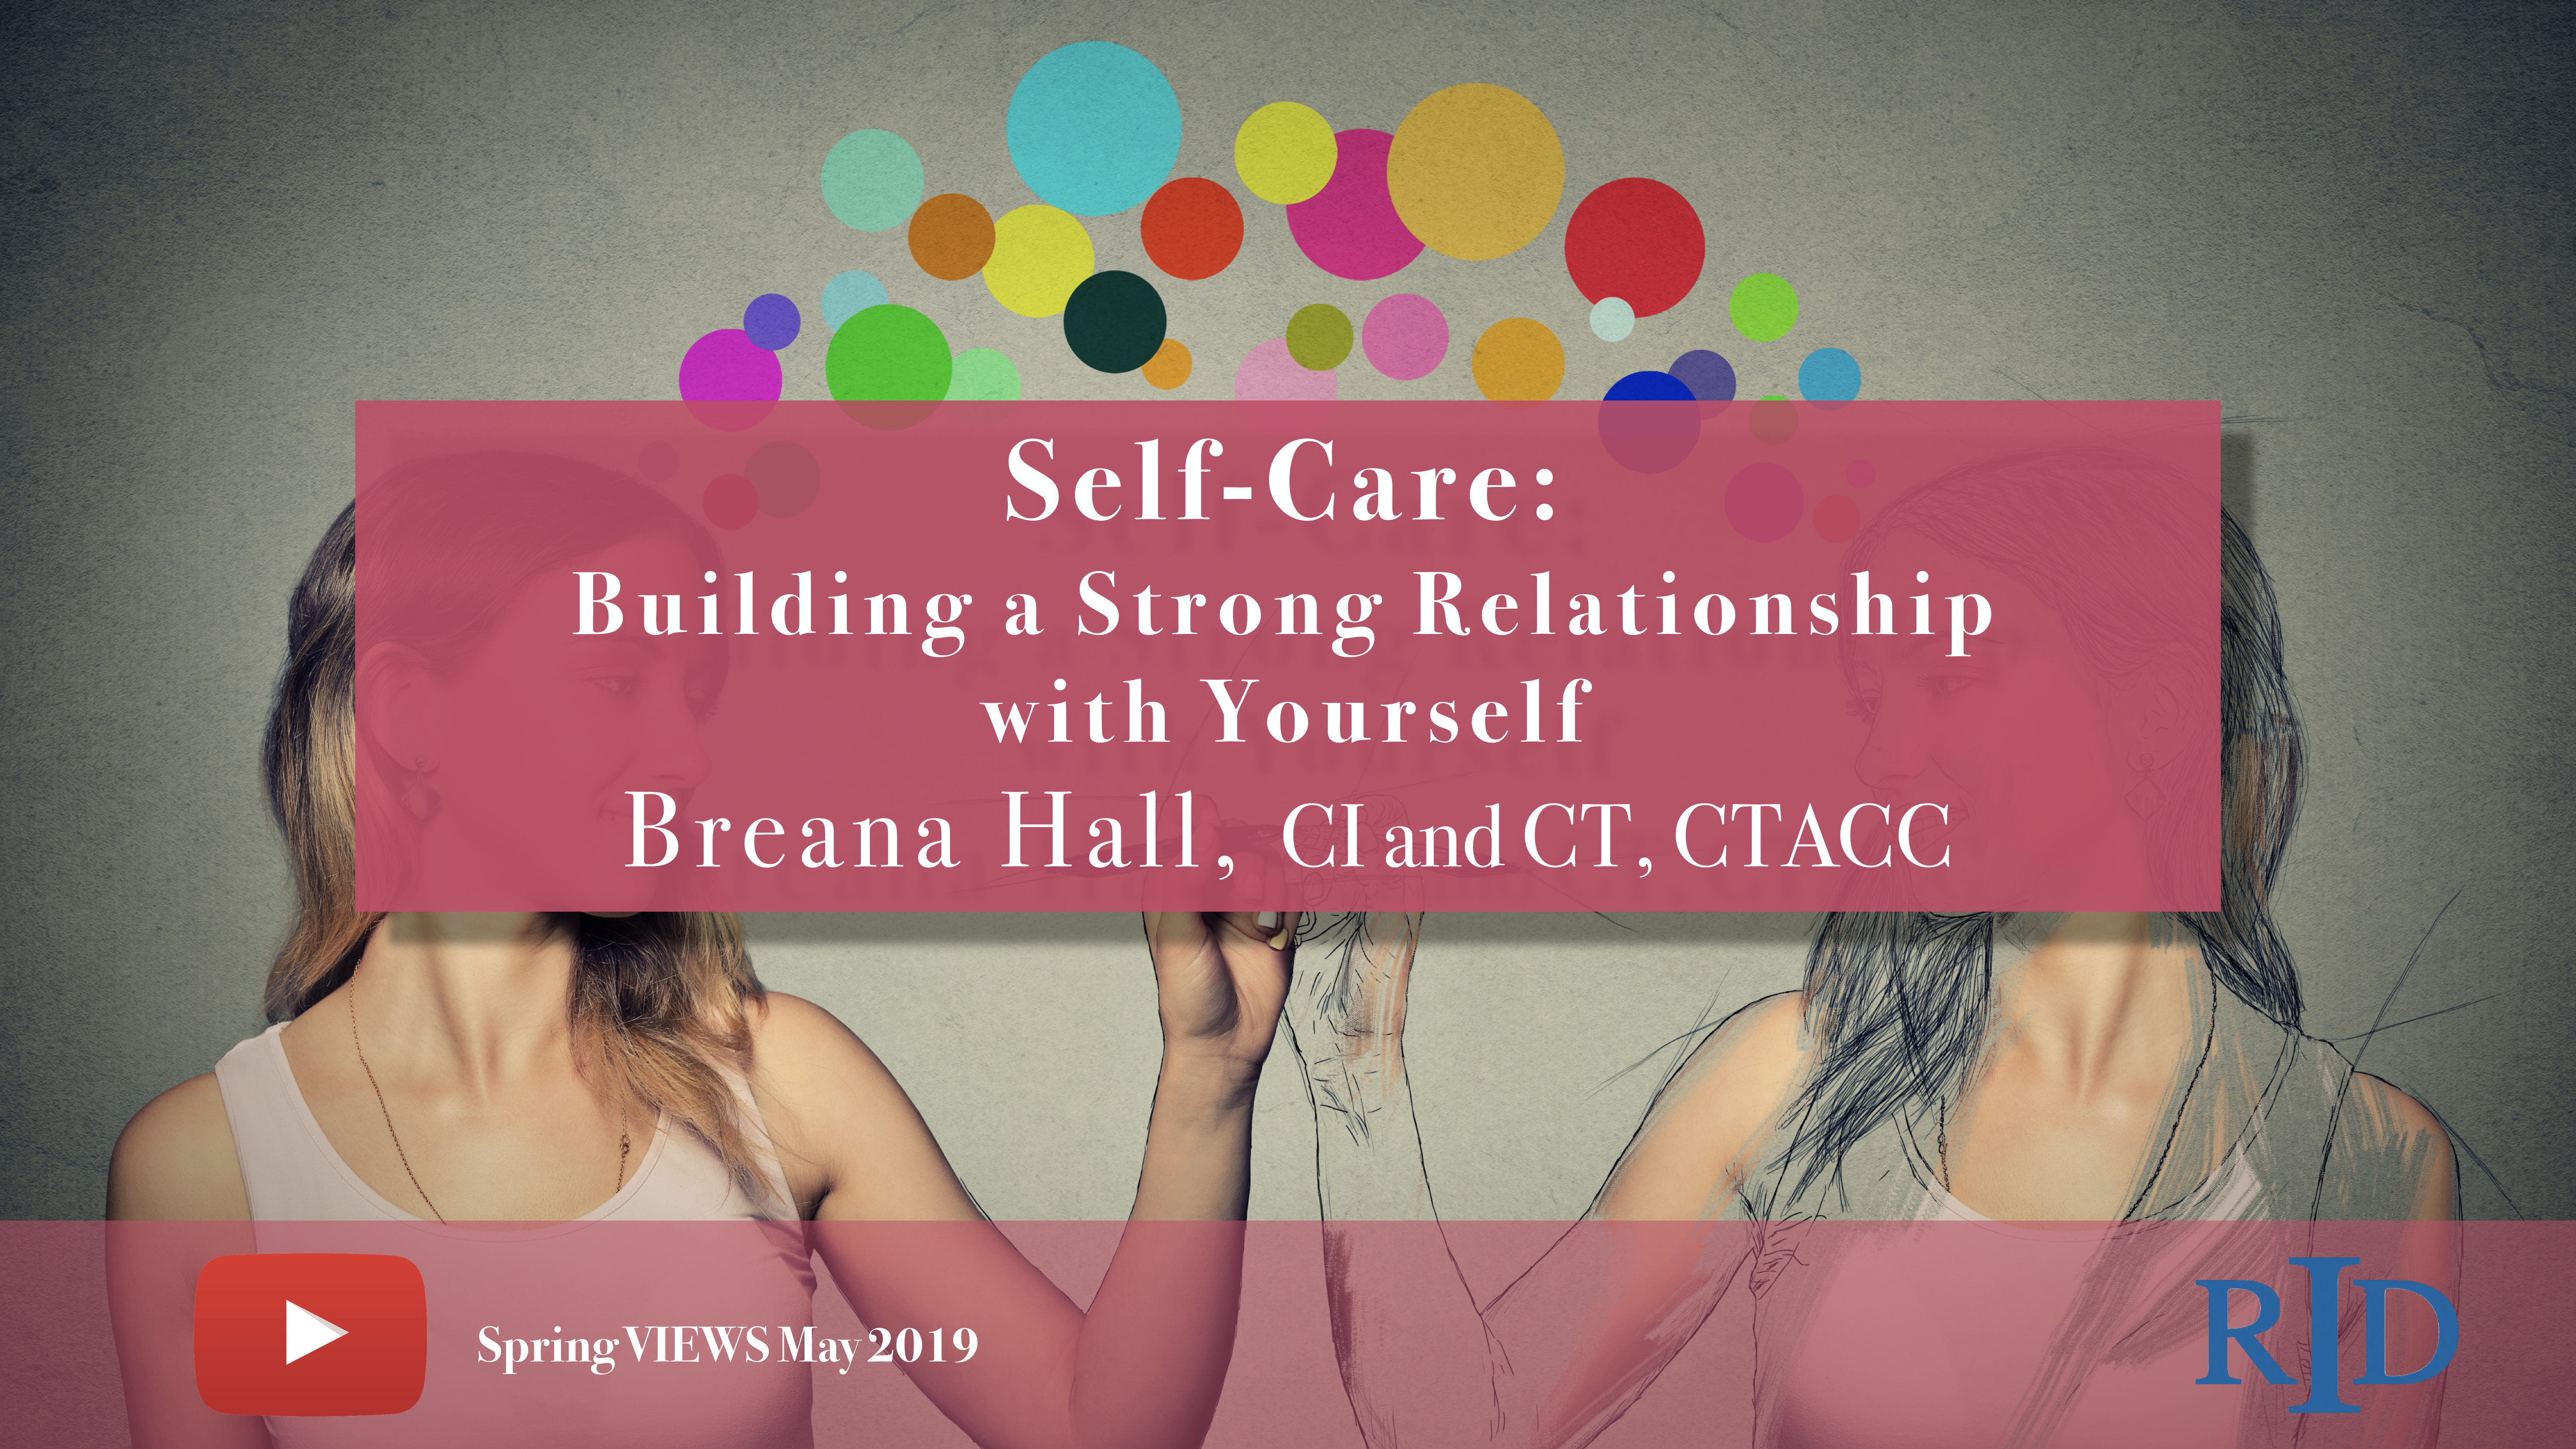 Self-Care: Building a Strong Relationship with Yourself